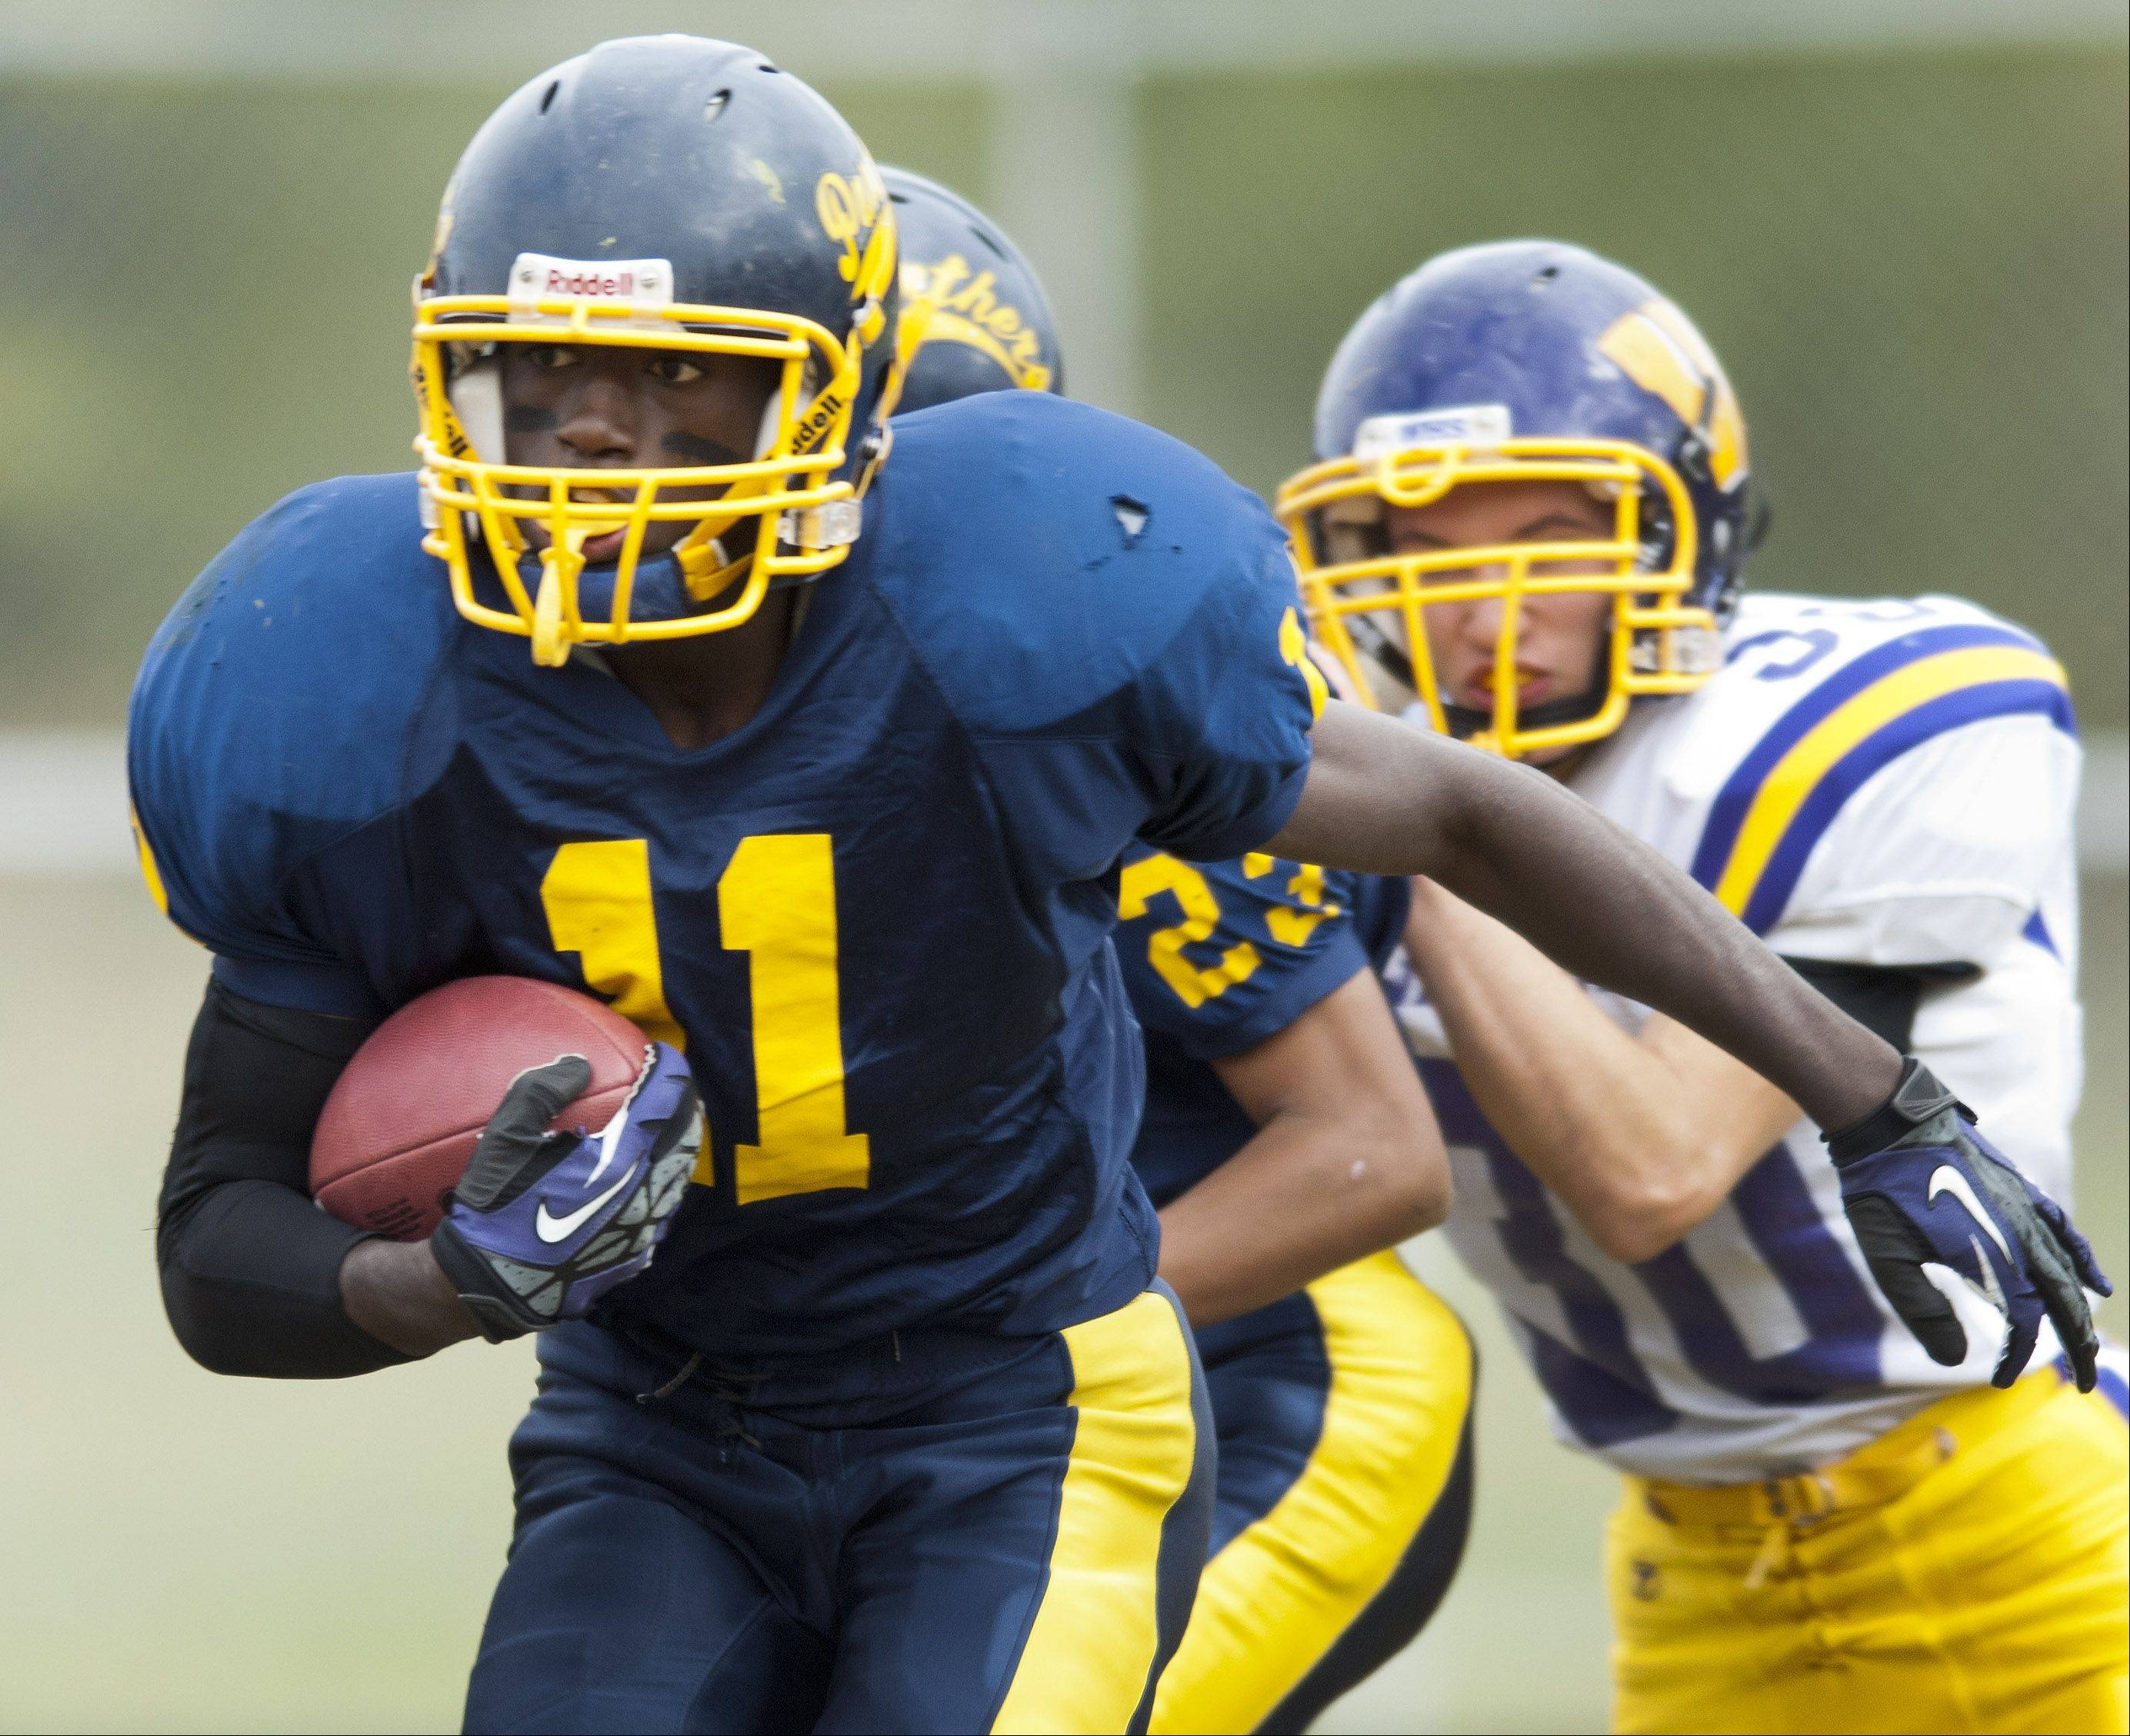 Round Lake's Chris Washington carries the ball during Saturday's game against Wauconda.